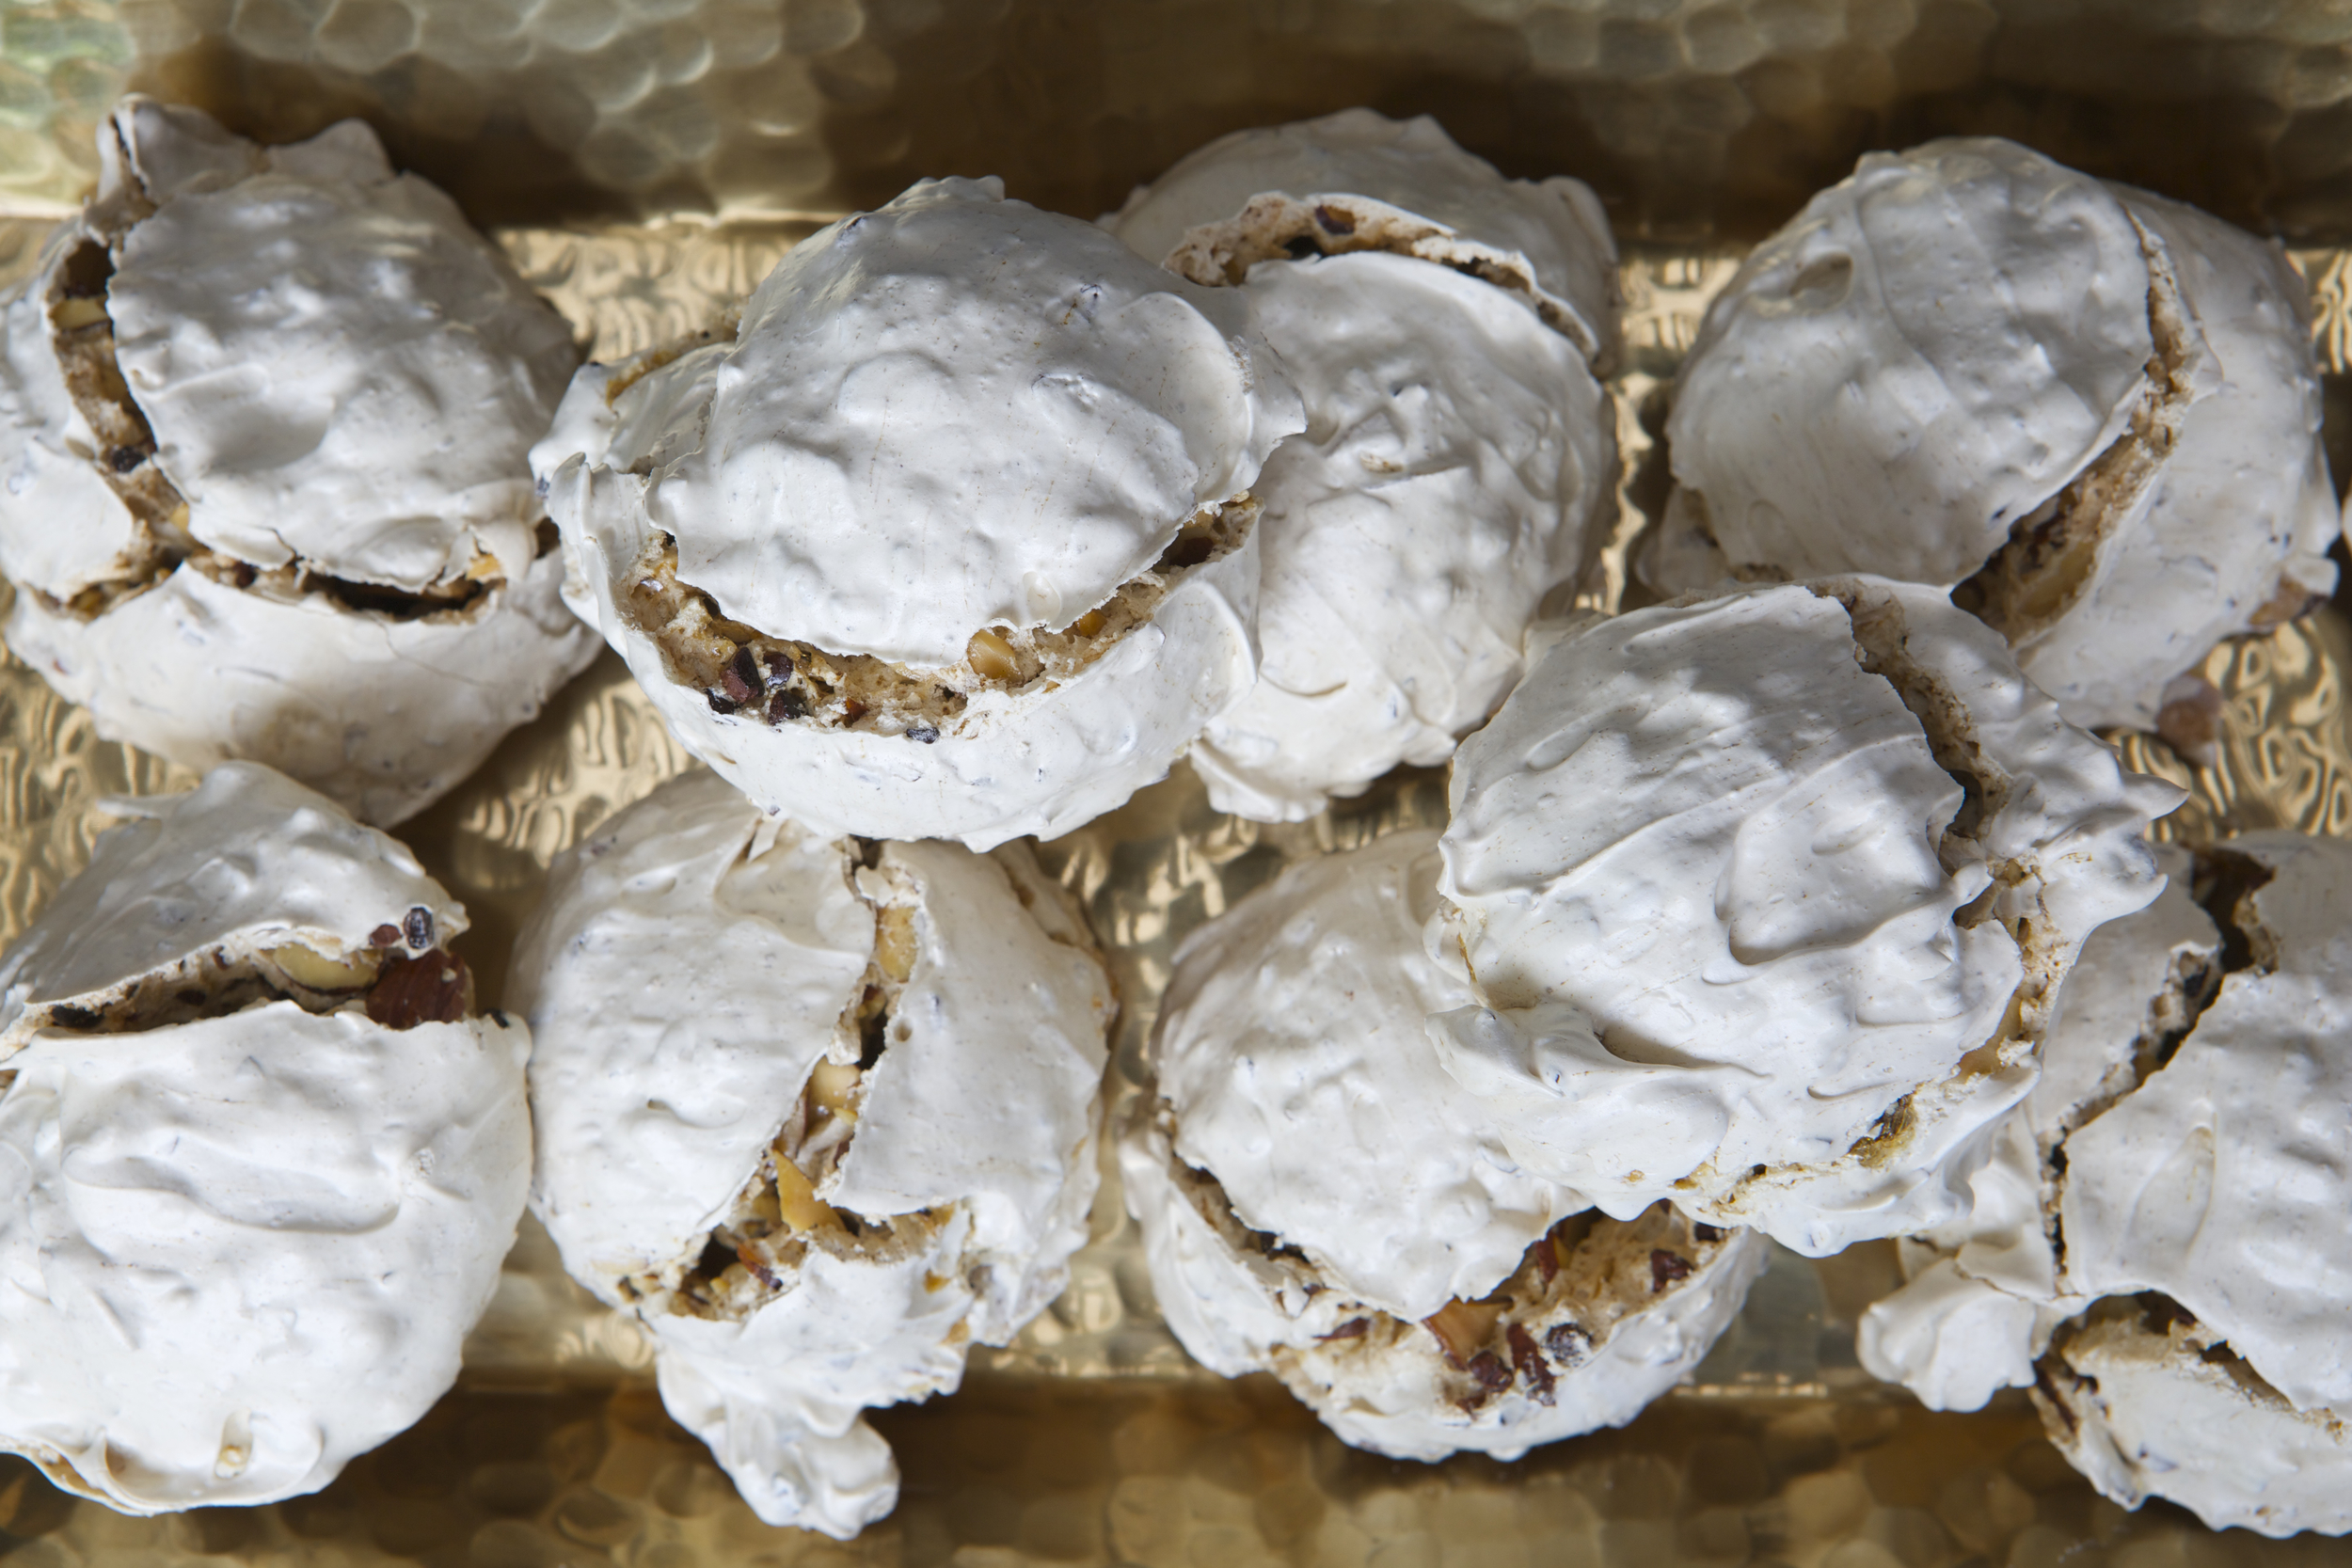 Crispy meringue cookies with cocoa nibs and almonds.